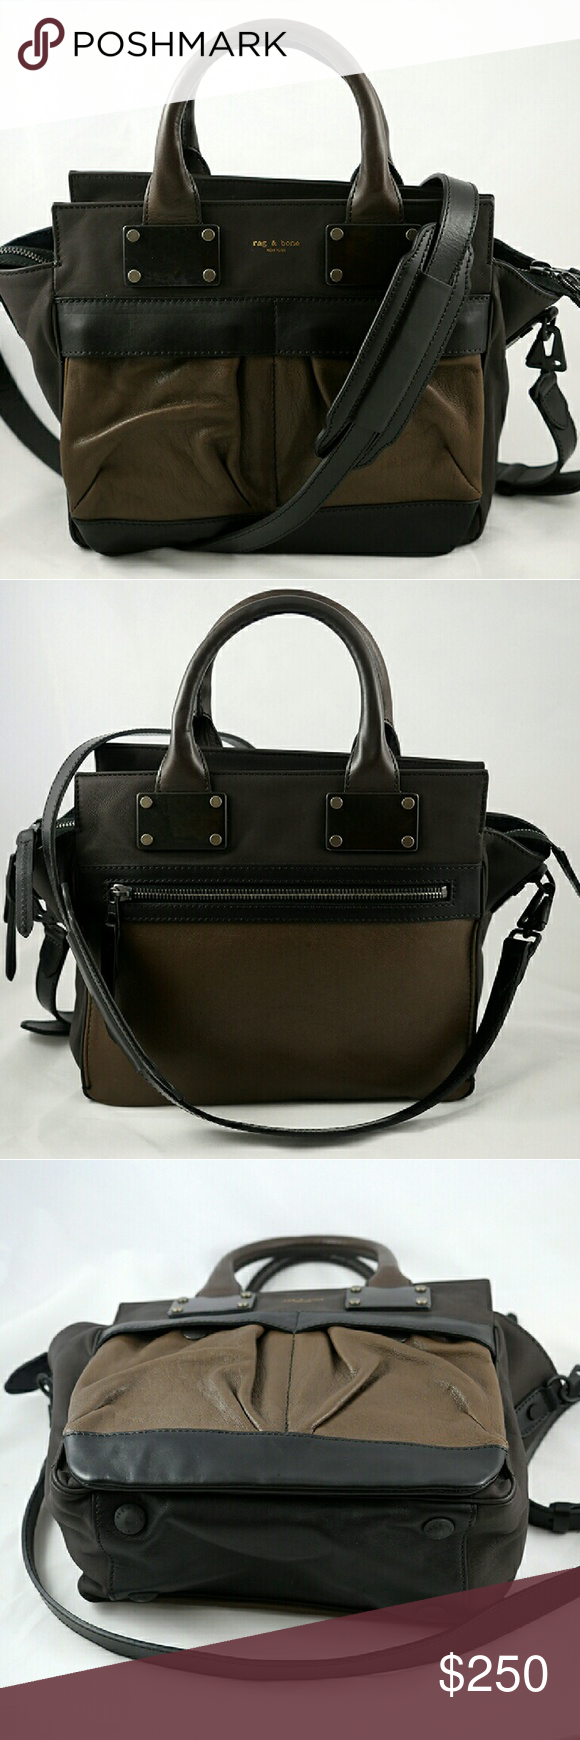 Rag and Bone Small Pilot Bag in Mocha Made in Italy. Black and brown handbag with detachable shoulder strap. Embossed logo on the front, lots of zippers and pockets, with feet on the bottom and round top handles. Used bag in excellent condition, does not have dust bag. Rag & Bone Bags